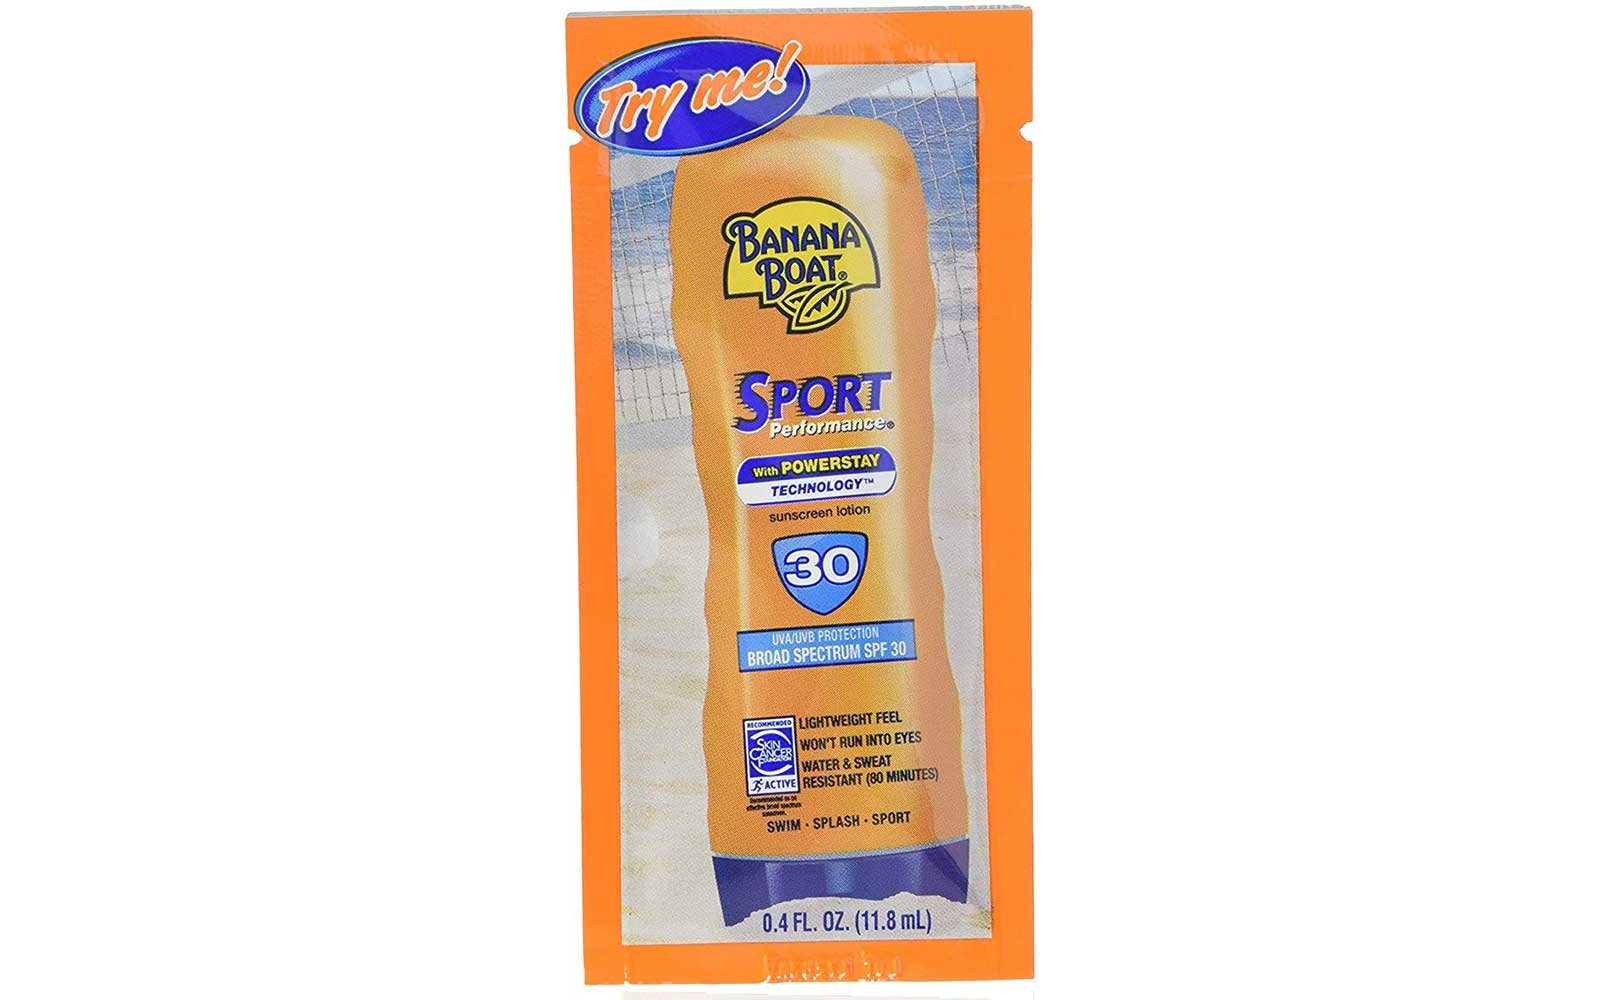 Banana Boat Sport Sunscreen